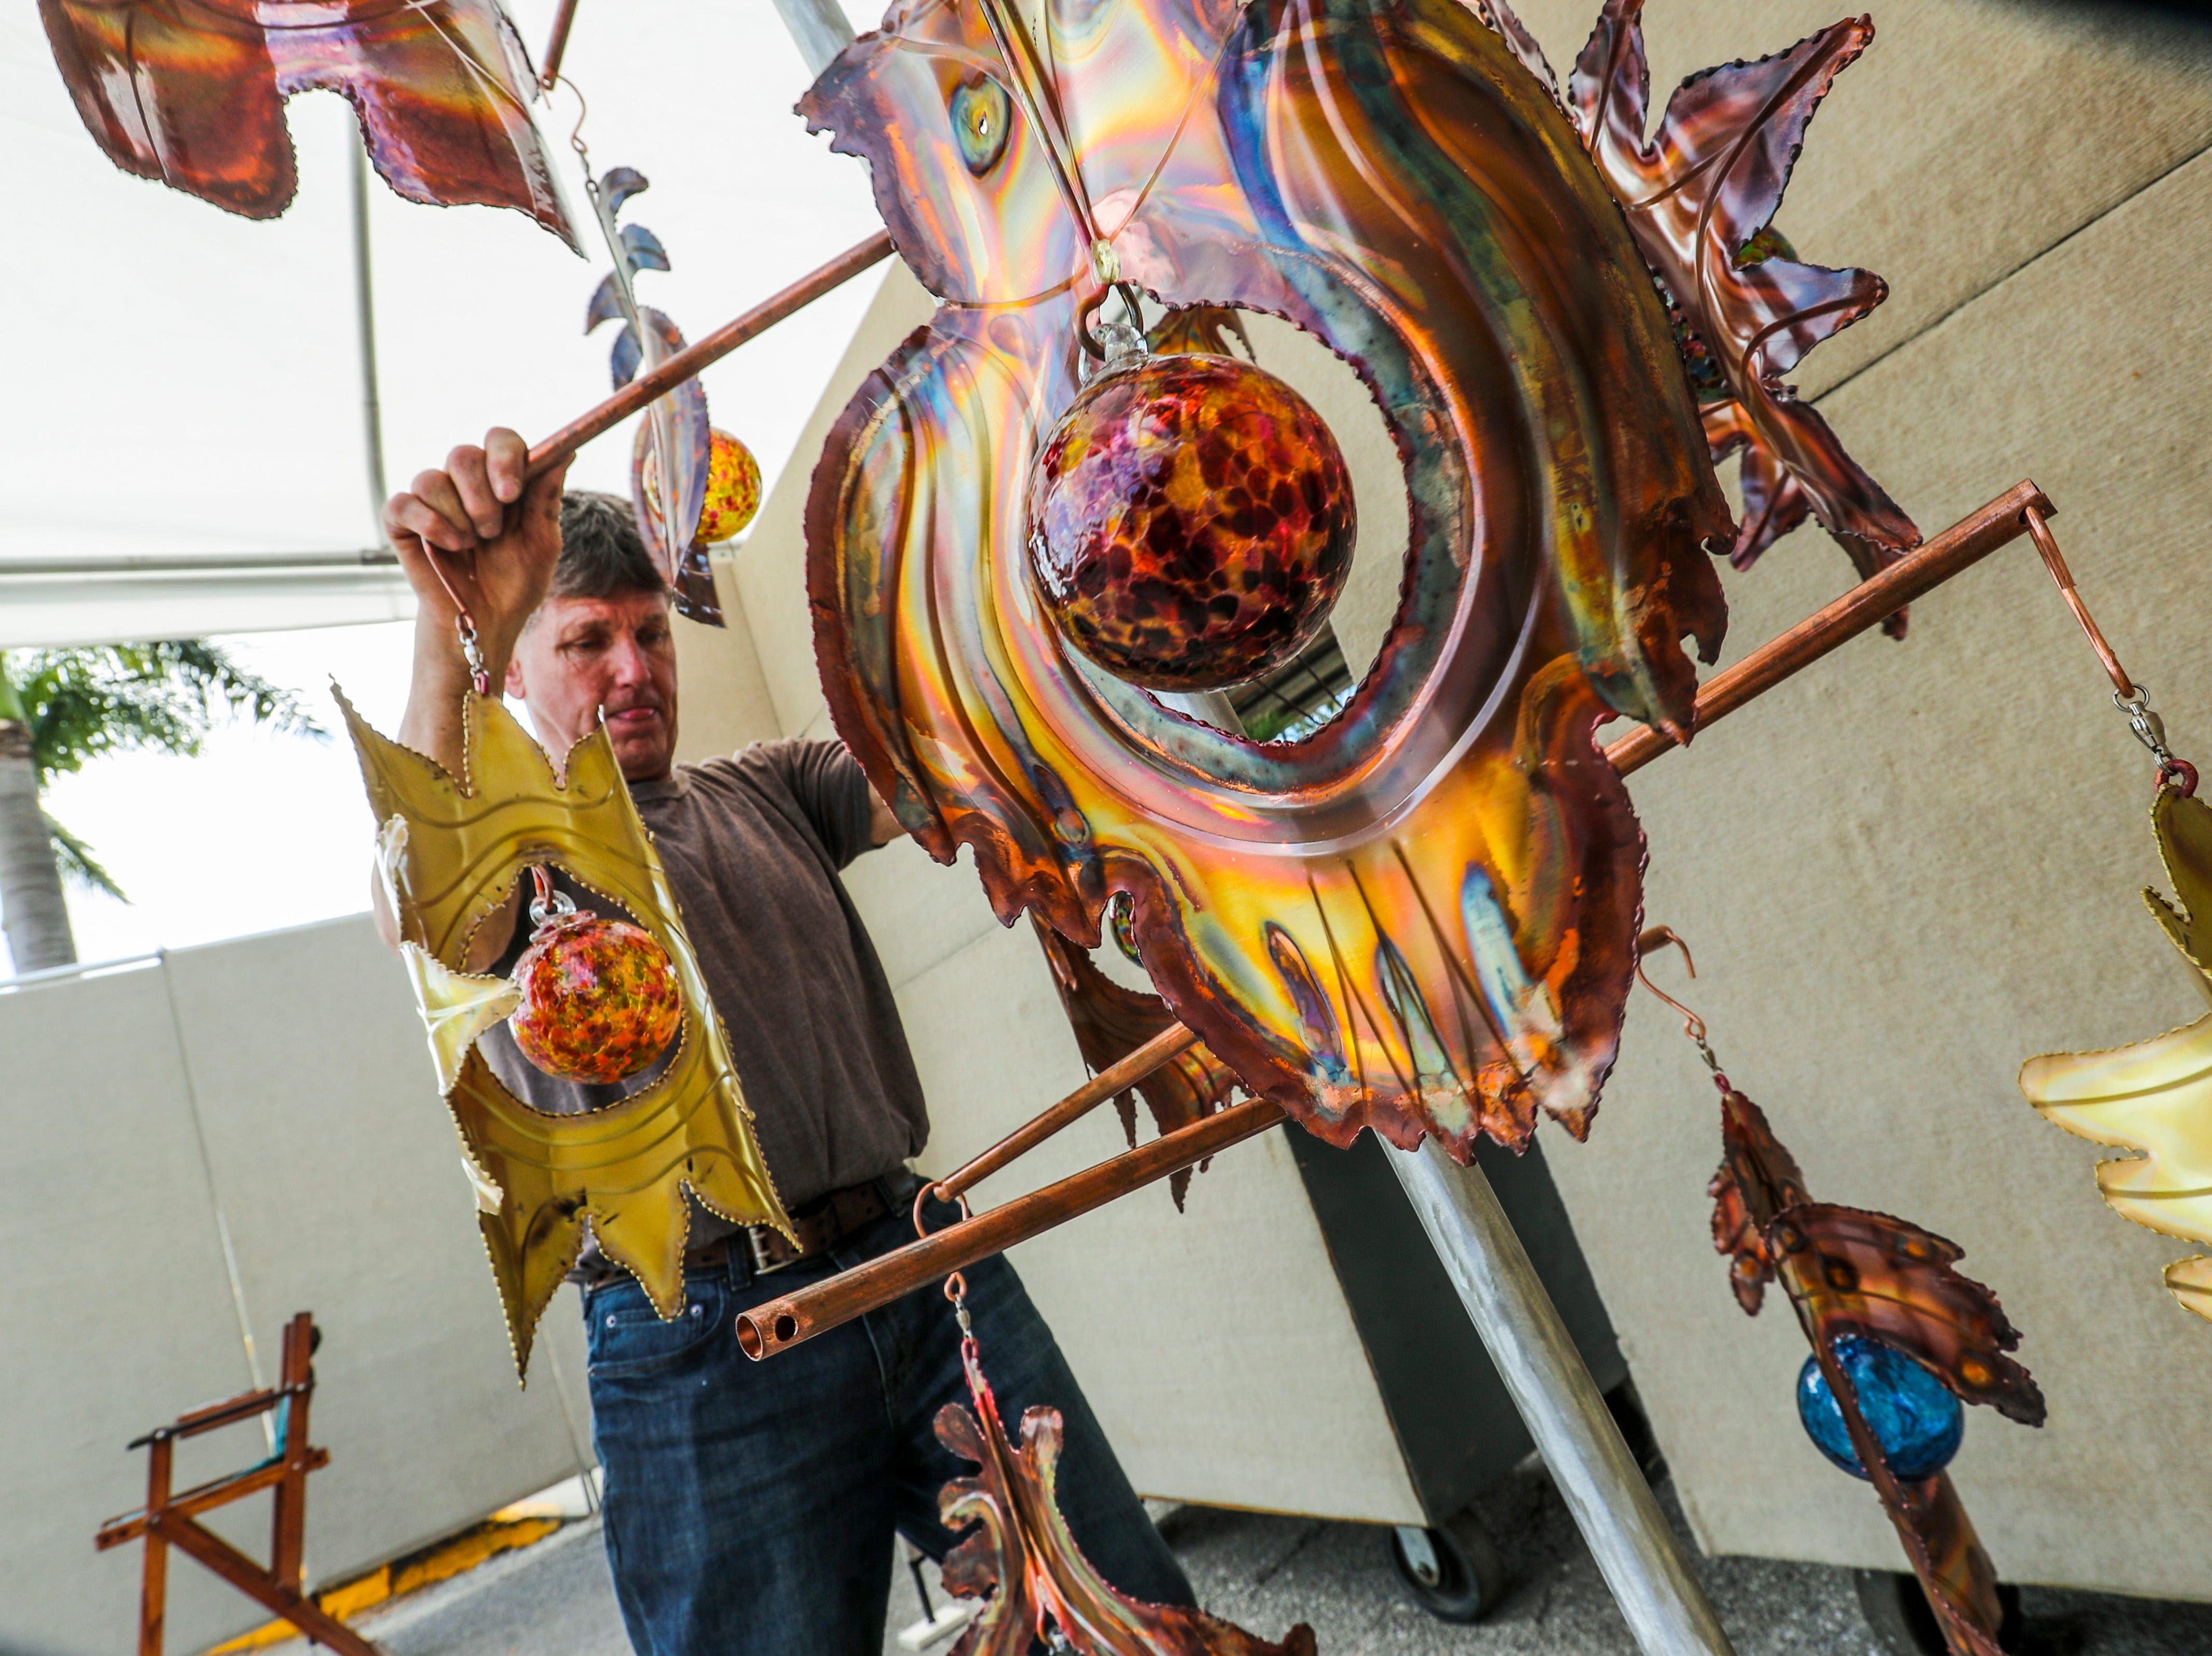 Steve Anderson, Anderson's Metal Sculpture, out of Cedar Springs, MI, moves around his art as he sets his booth up Friday morning. His boothArtists spent the morning setting up for ArtFest Fort Myers downtown on Edwards Drive. The festival goes all weekend.